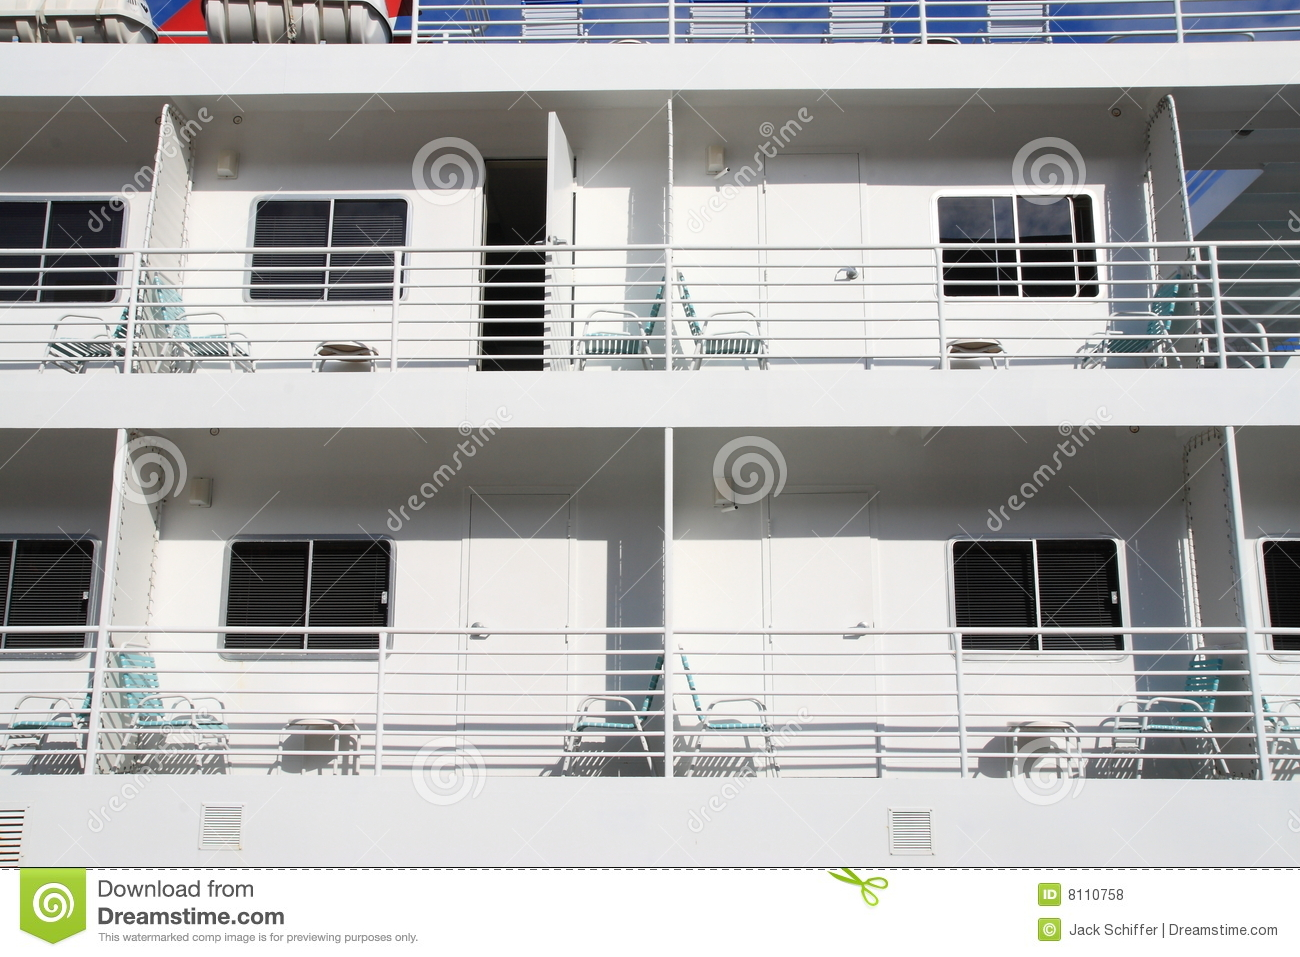 Cabins On Cruise Ships Royalty Free Stock Photos Image